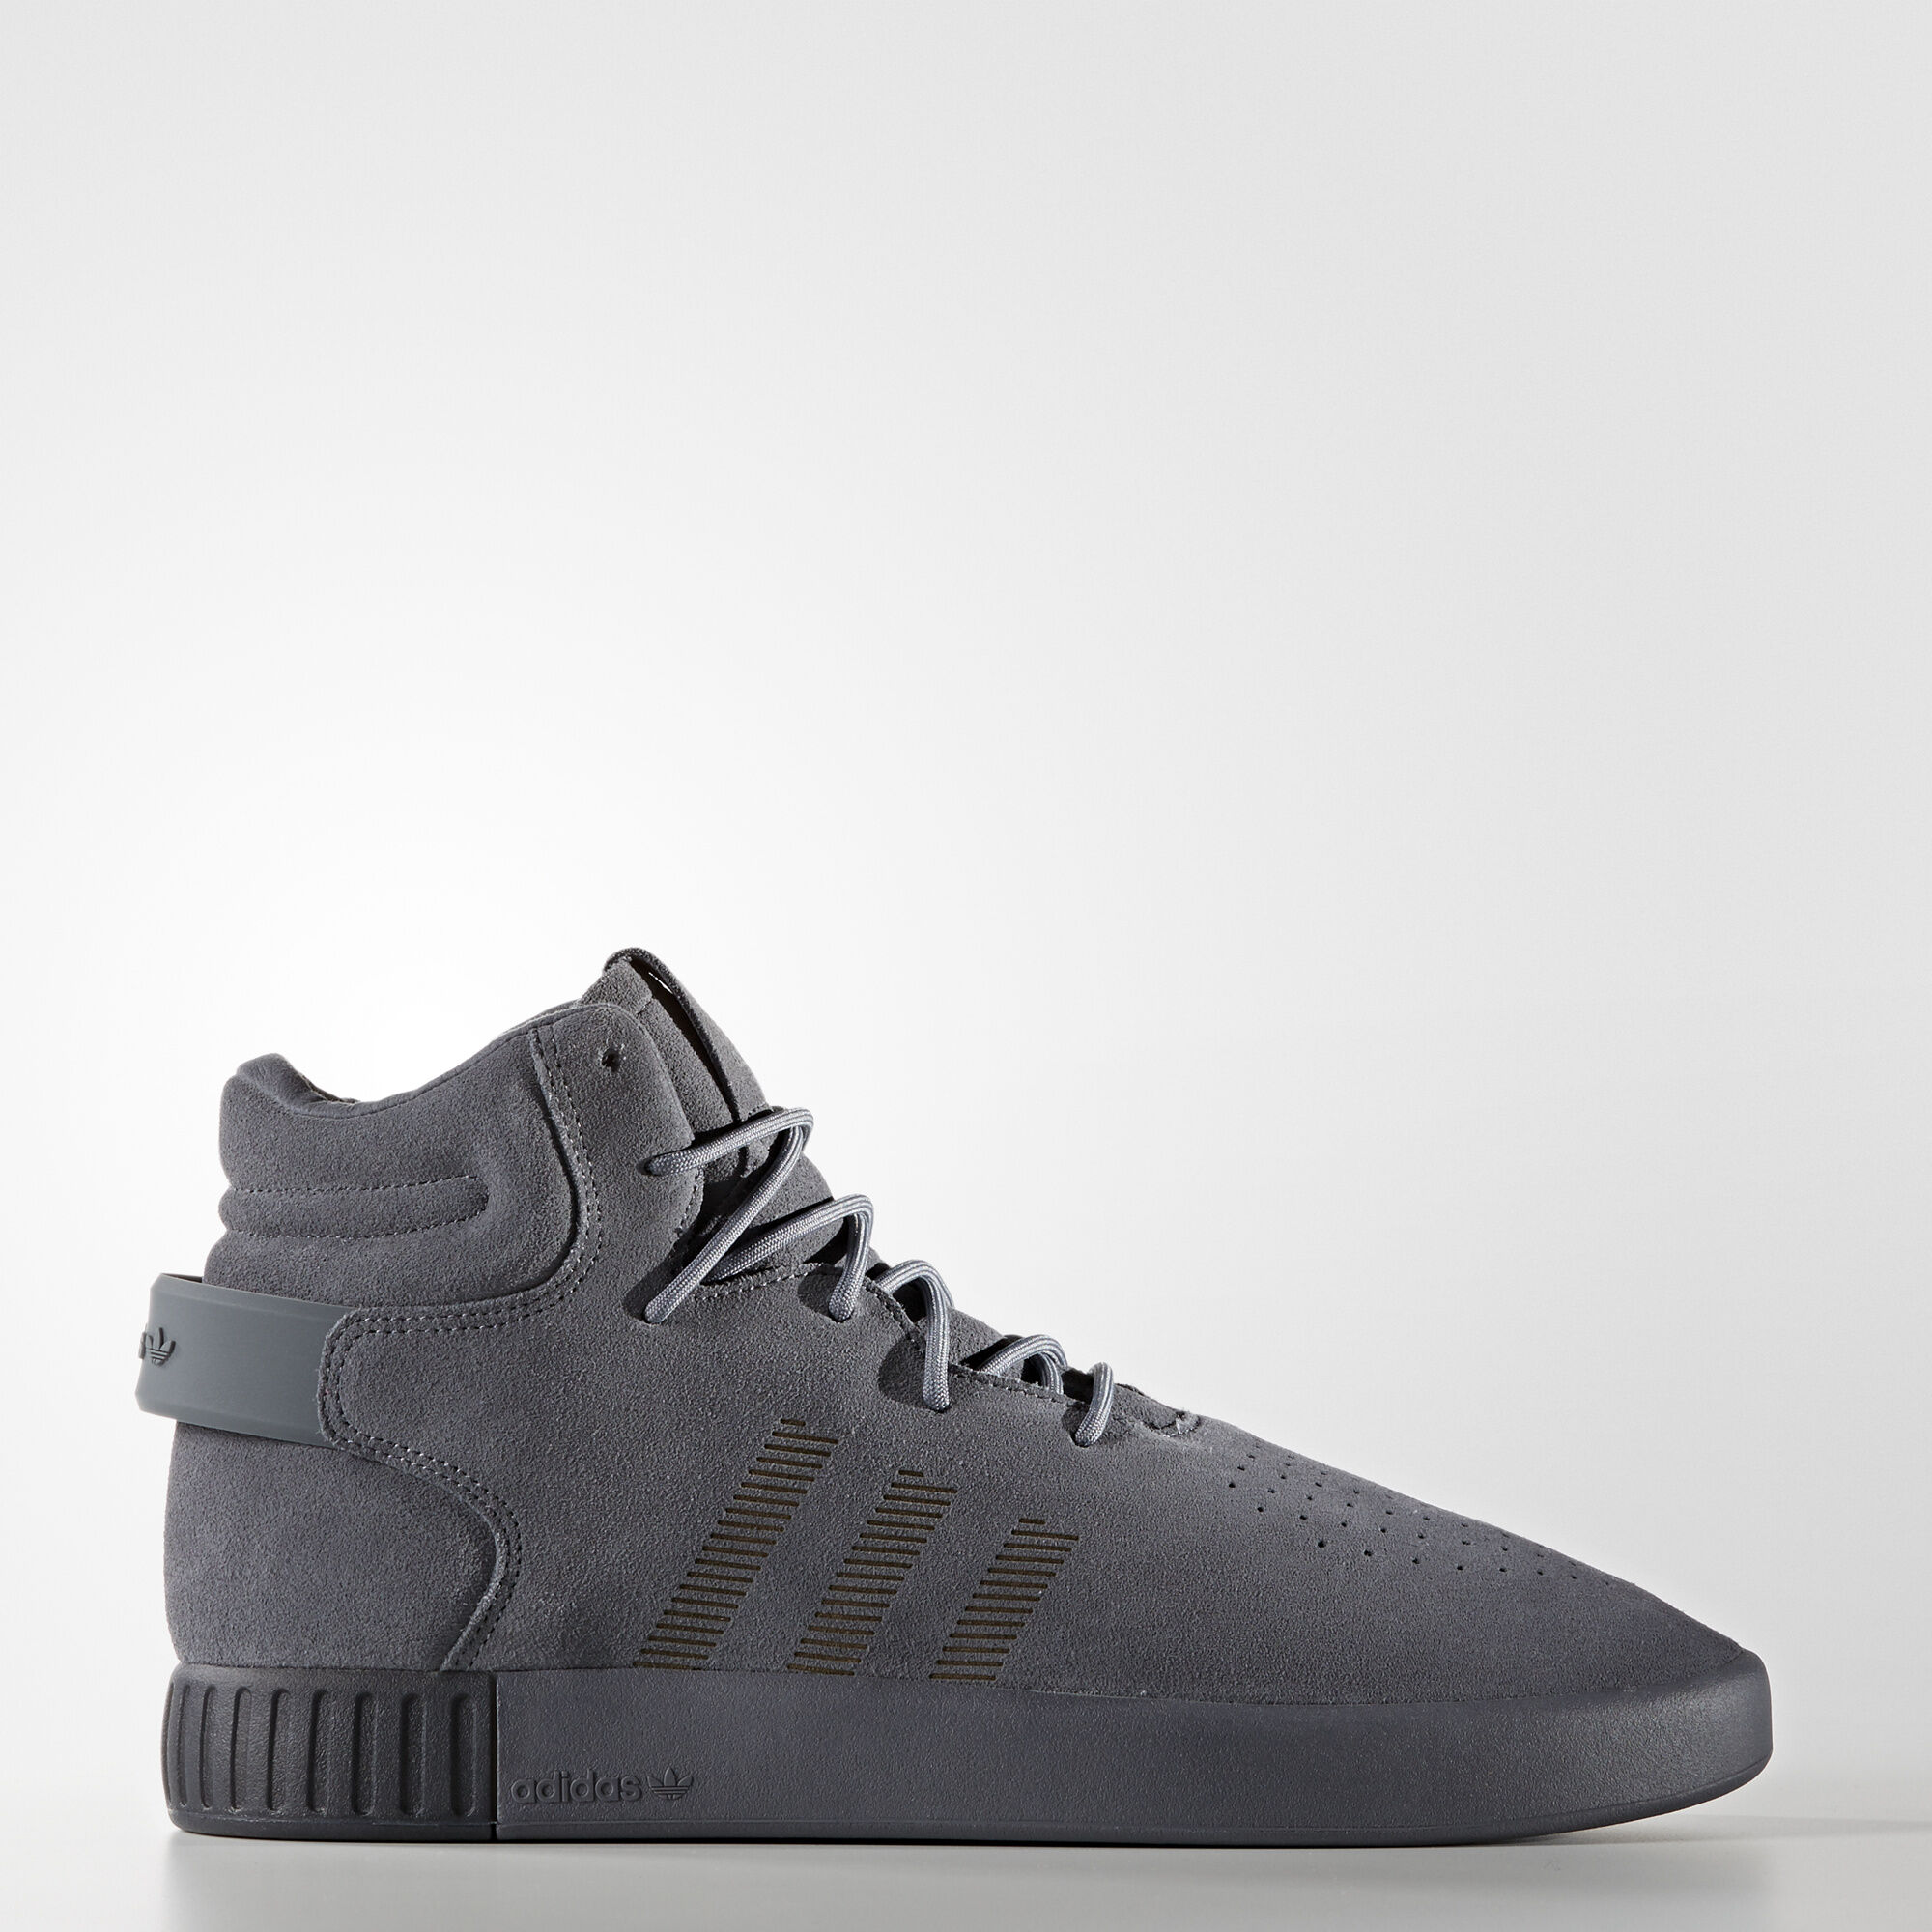 4dfadf0a960 Adidas Tubular Shoes Grey los-granados-apartment.co.uk